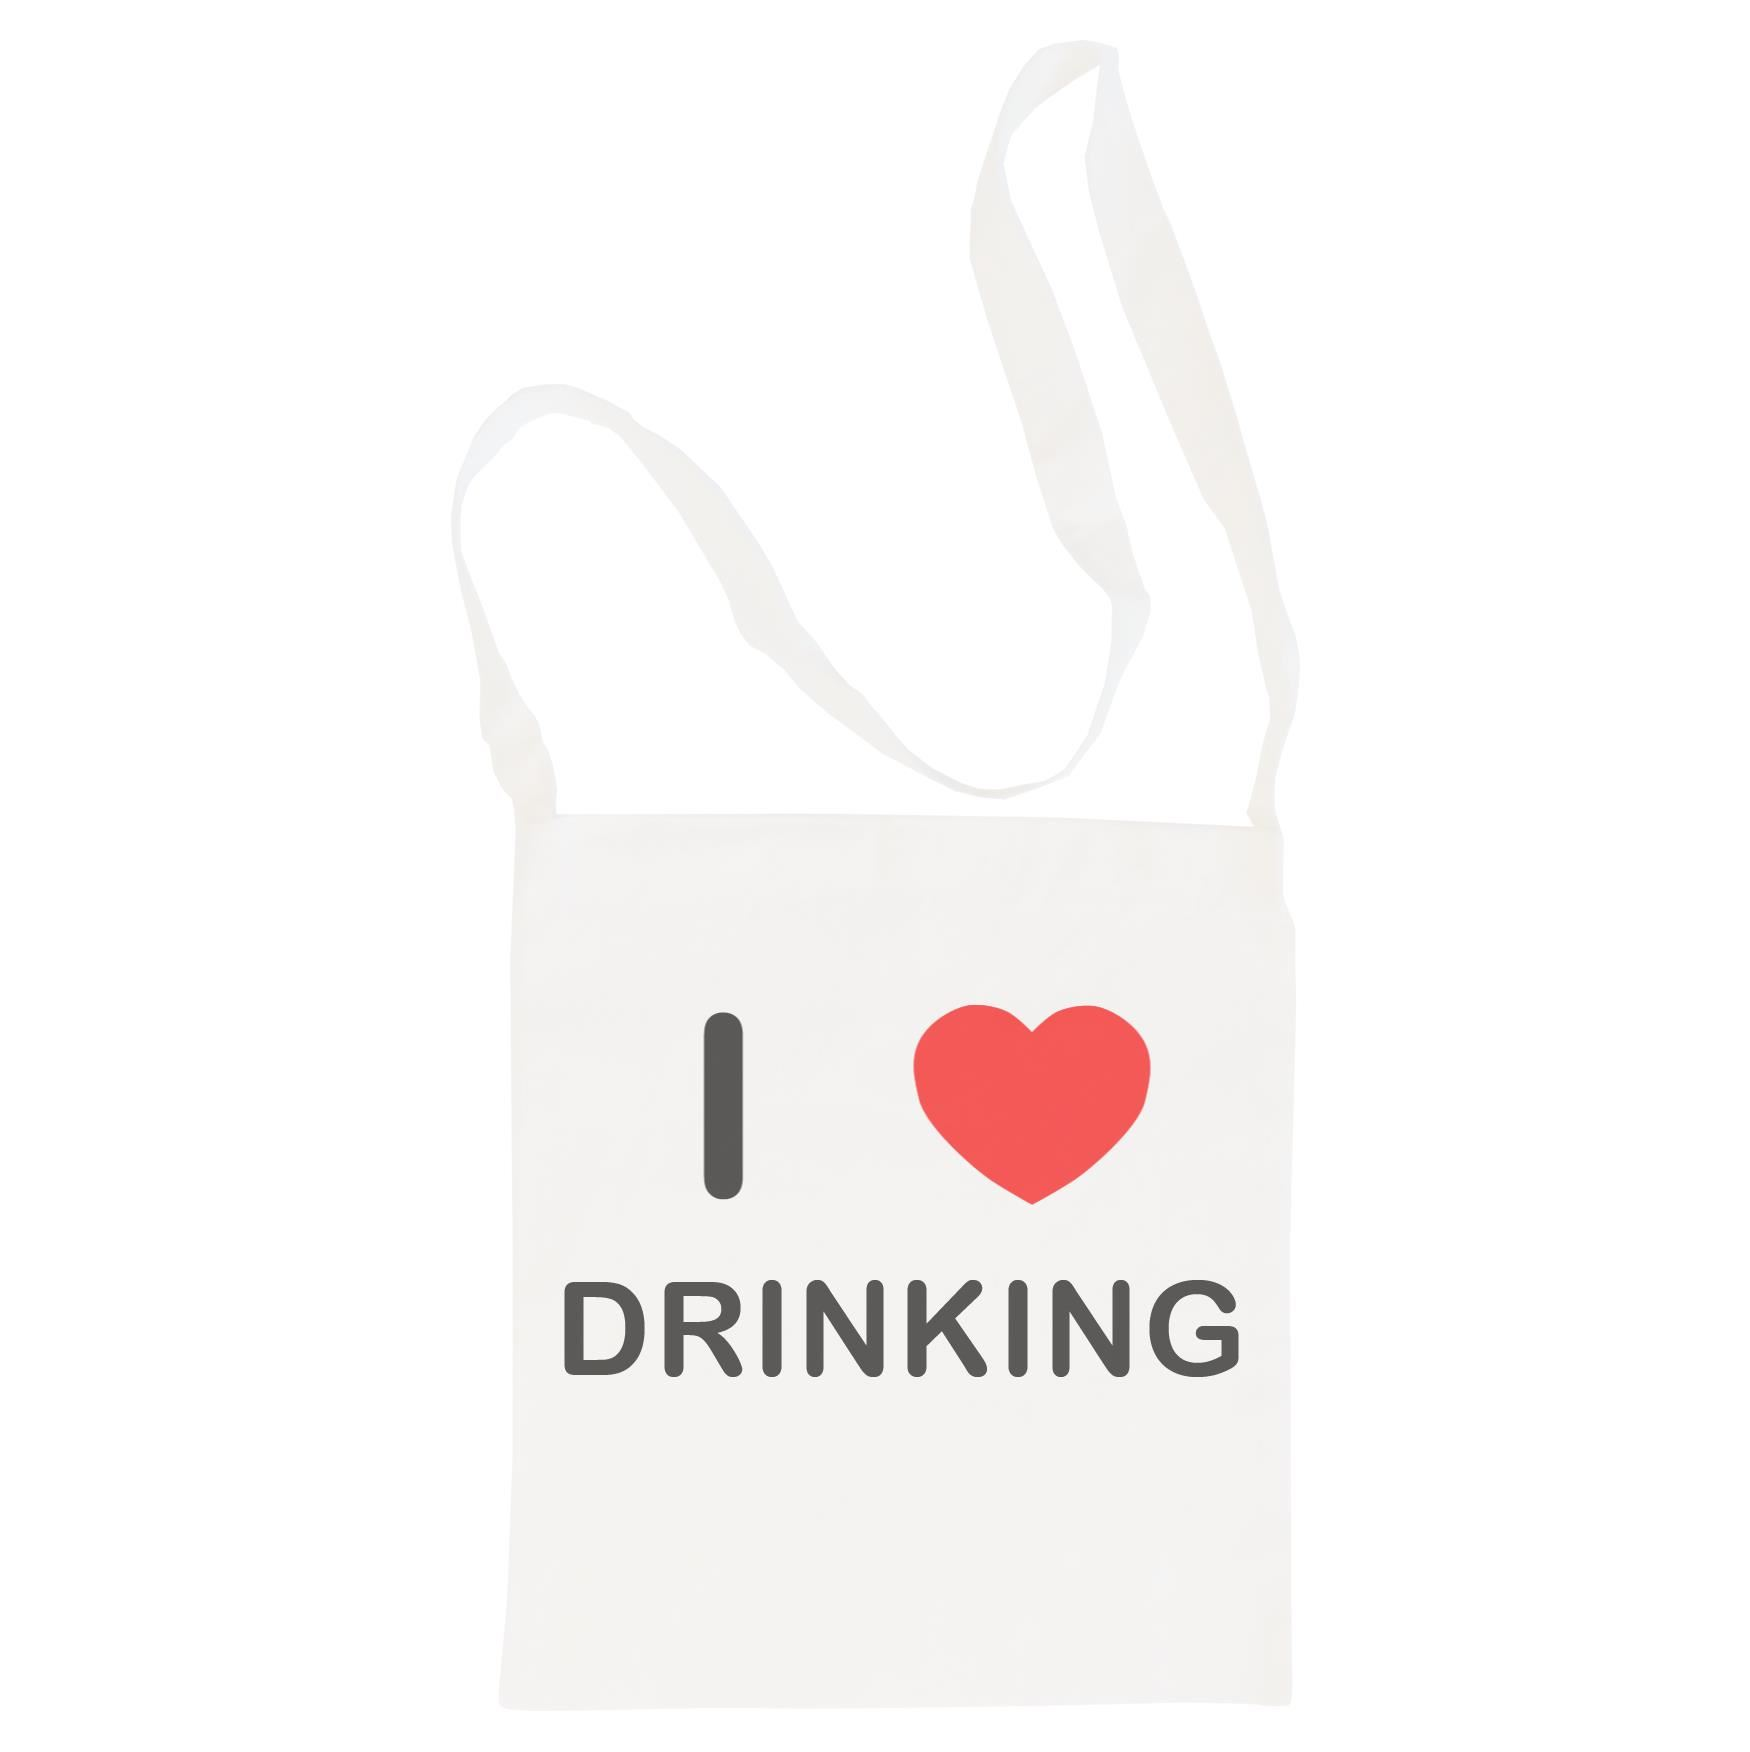 I Love Drinking - Cotton Bag | Size choice Tote, Shopper or Sling